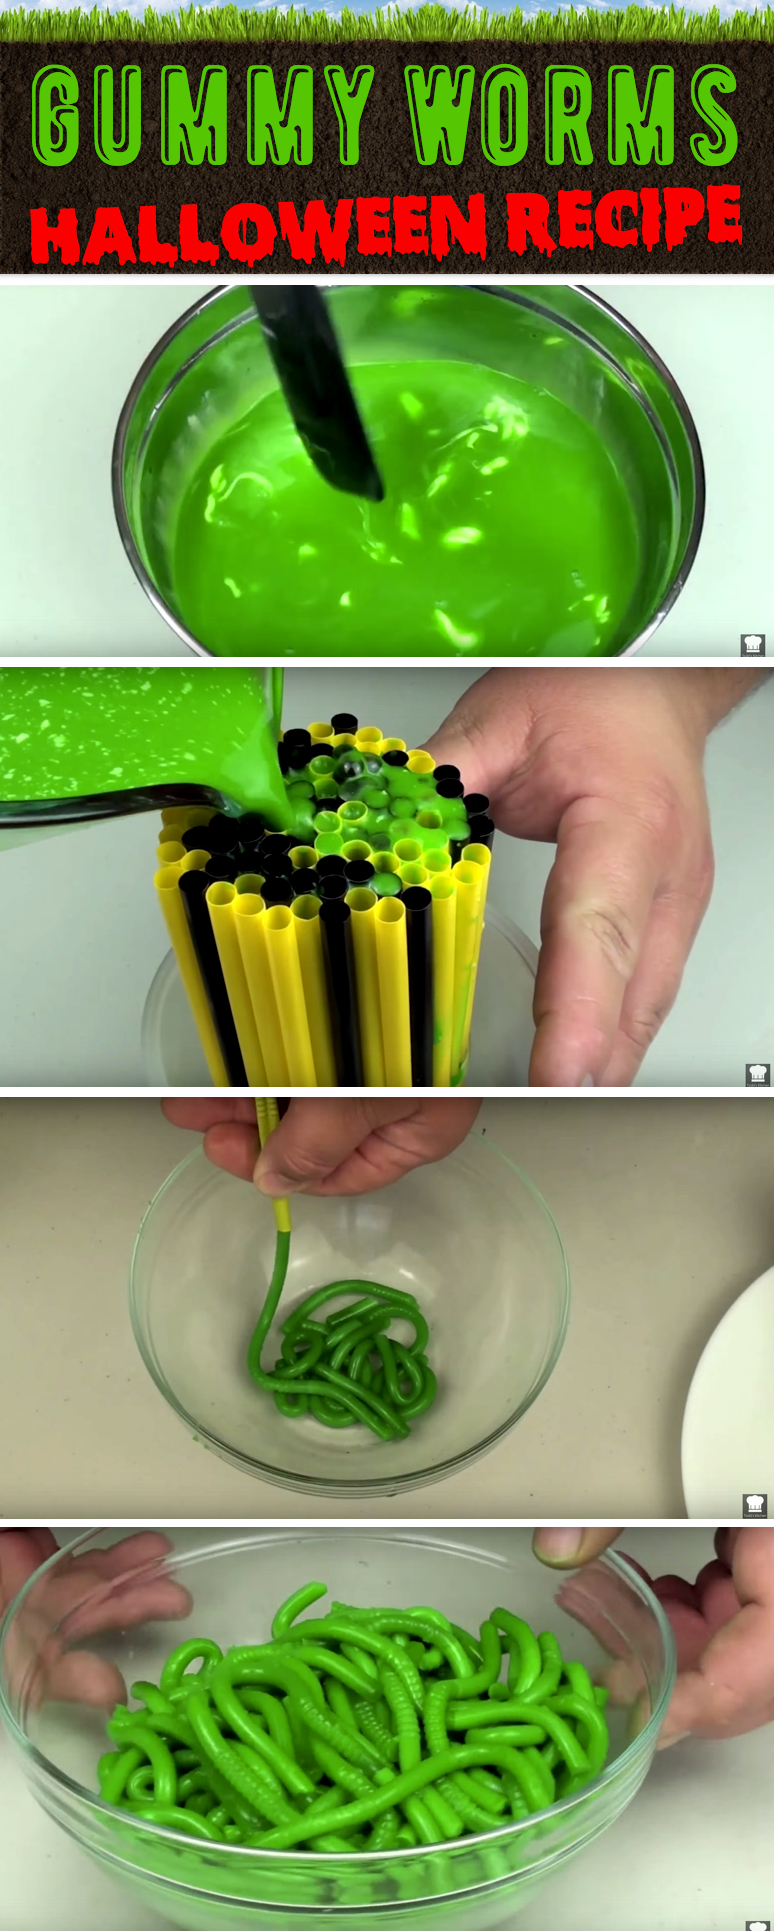 Make Your Own Juicy, Slimy Gummy Worms This Halloween